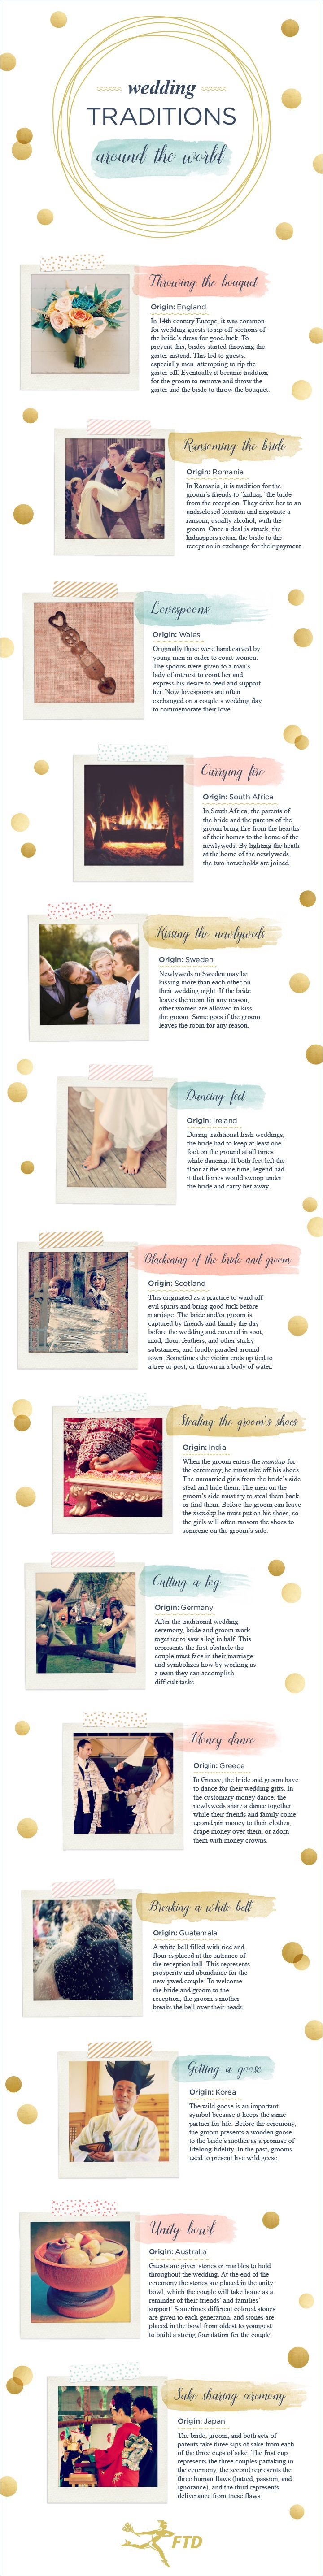 Did you know that in Germany after the wedding ceremony, it's customary for the bride and groom to saw a log in half? In Greece, it's tradition for the couple to have a money dance! Our friends at FTD have the scoop on these international traditions + many more. What do you think...would you give any a try? | Visual by FTD, www.ftd.com